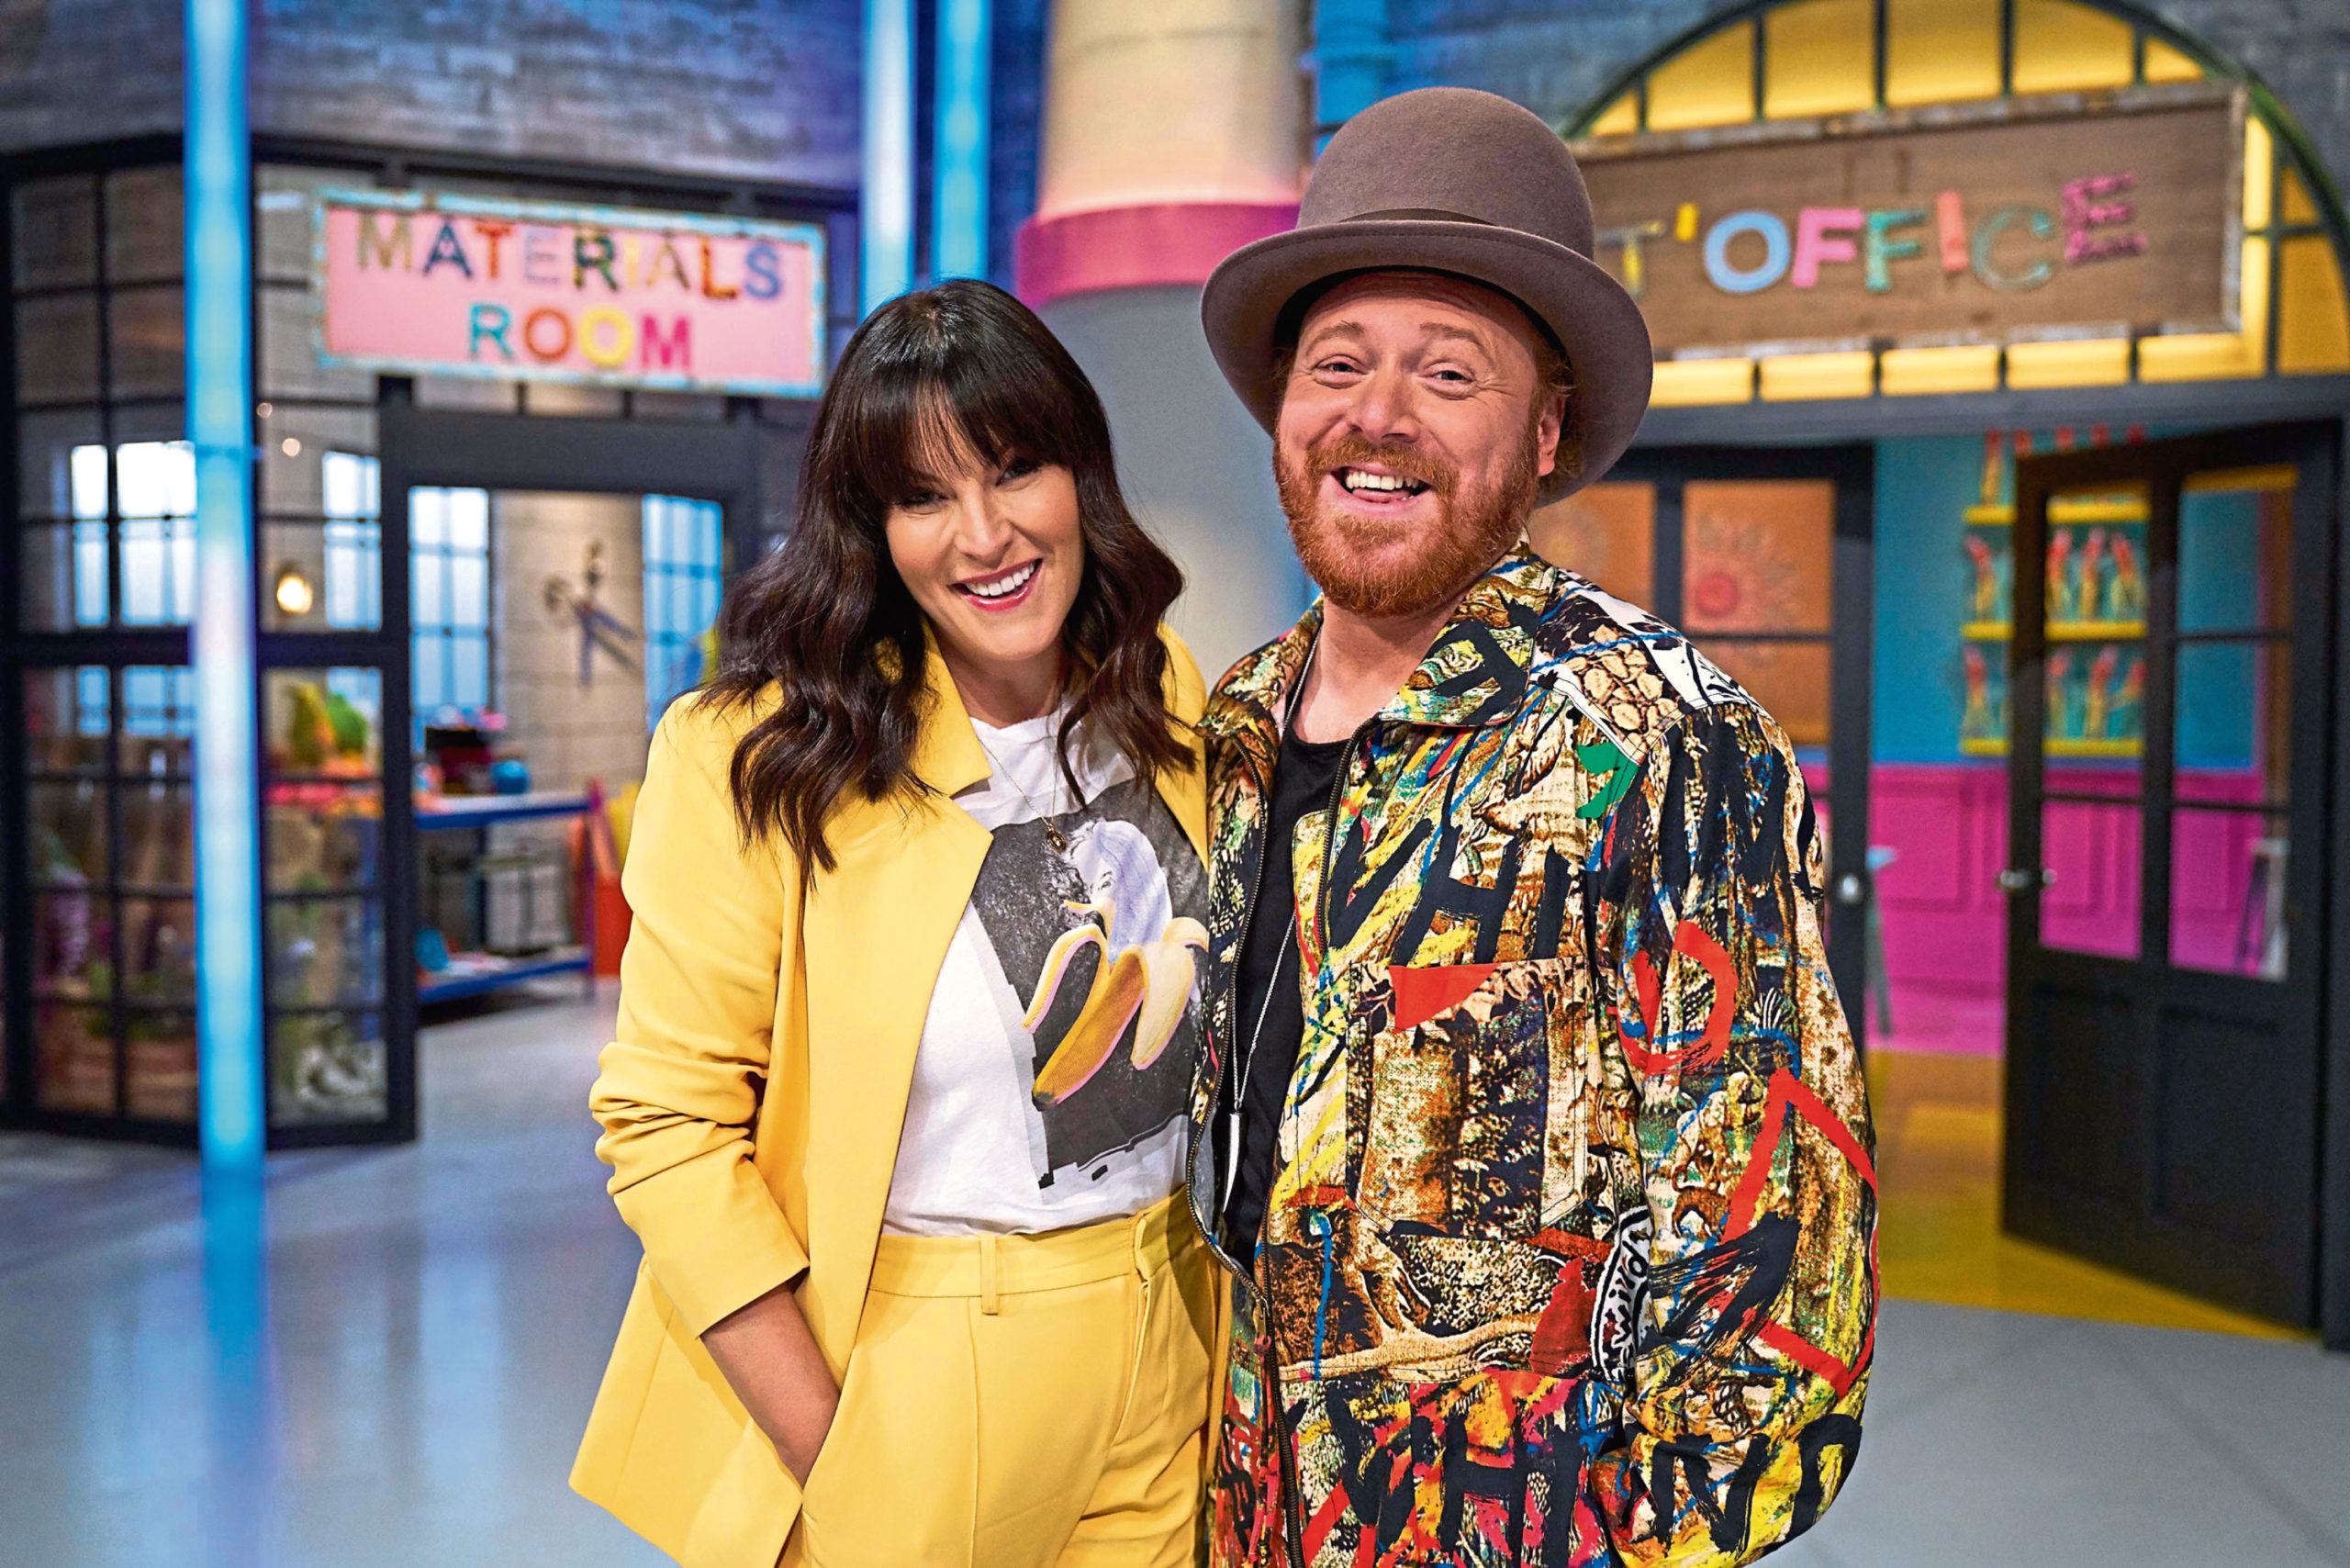 The Fantastical Factory Of Curious Craft hosts Anna Richardson and Keith Lemon